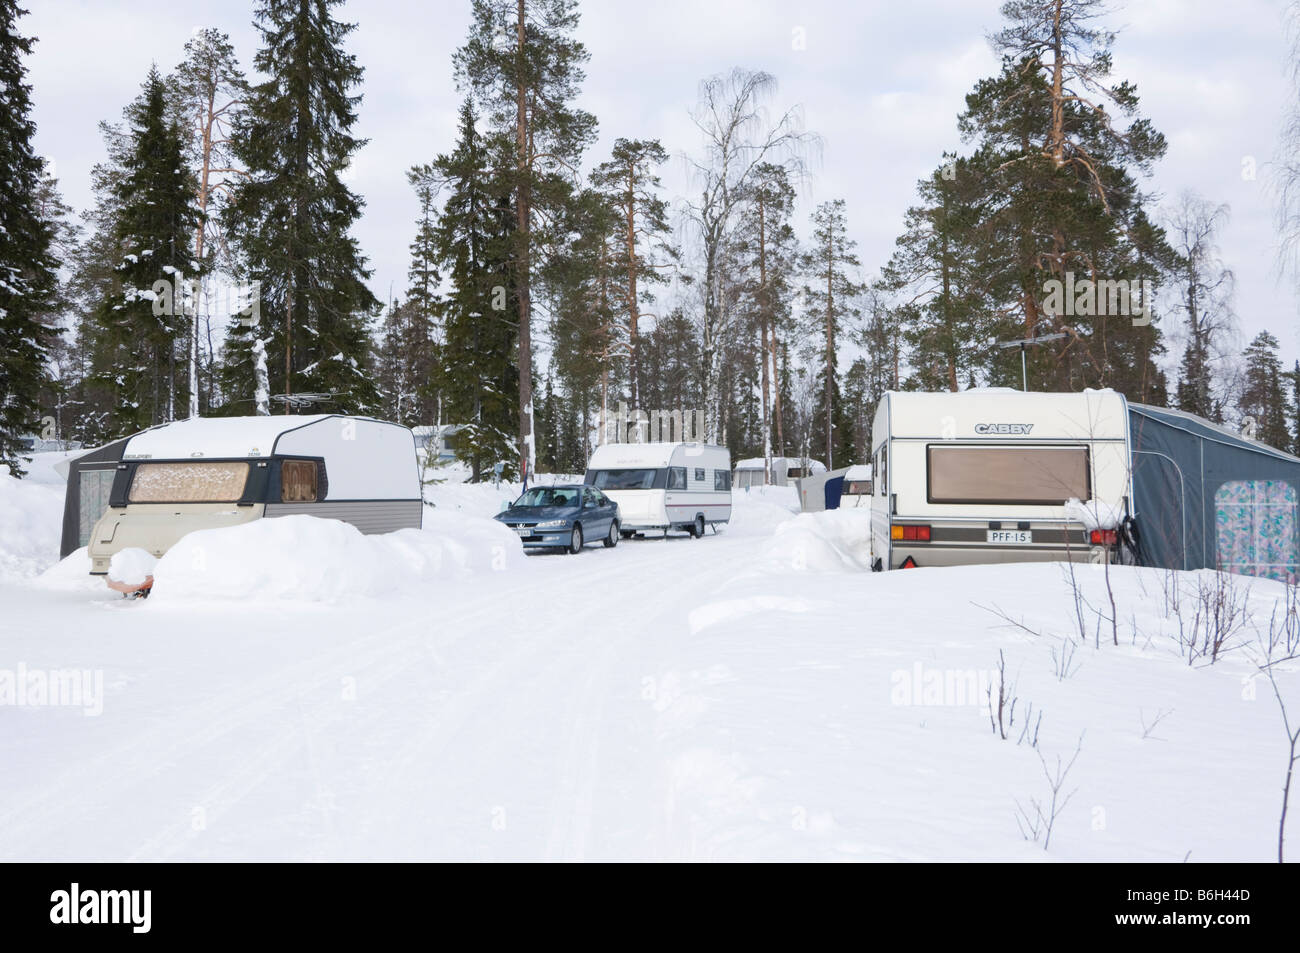 winter camping caravan stockfotos winter camping caravan bilder alamy. Black Bedroom Furniture Sets. Home Design Ideas